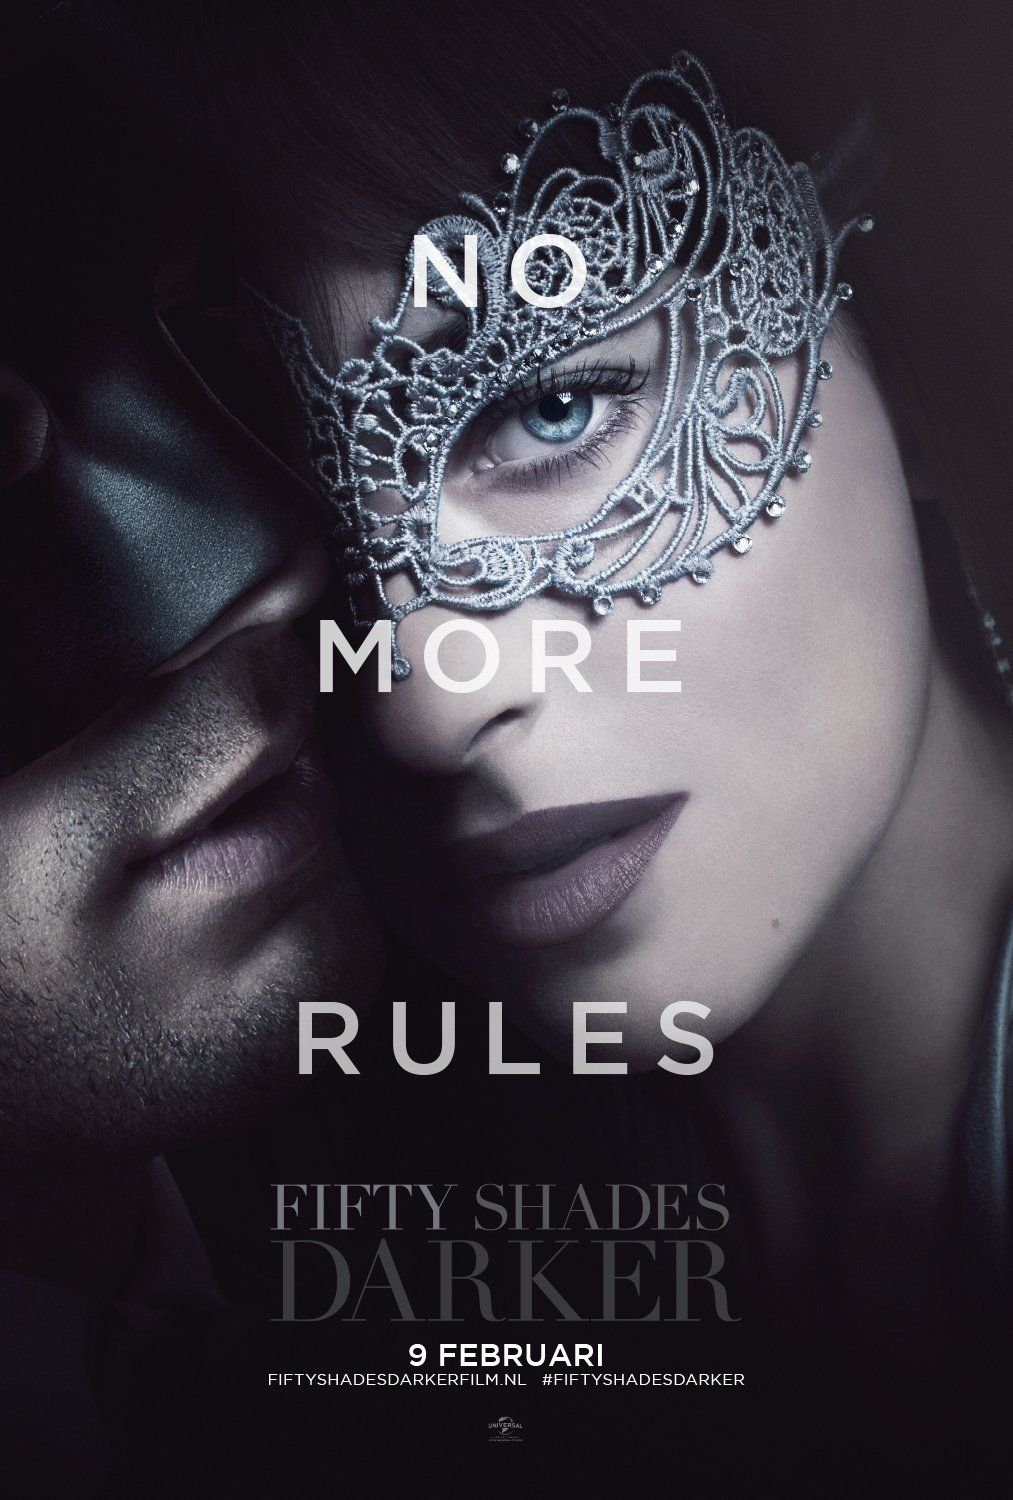 Critiques 50 Nuances De Grey Film : critiques, nuances, Fifty, Shades, Twitter:, Rules,, Secrets., #FiftyShadesDarker, #Posters, Febru…, Darker, Movie,, Darker,